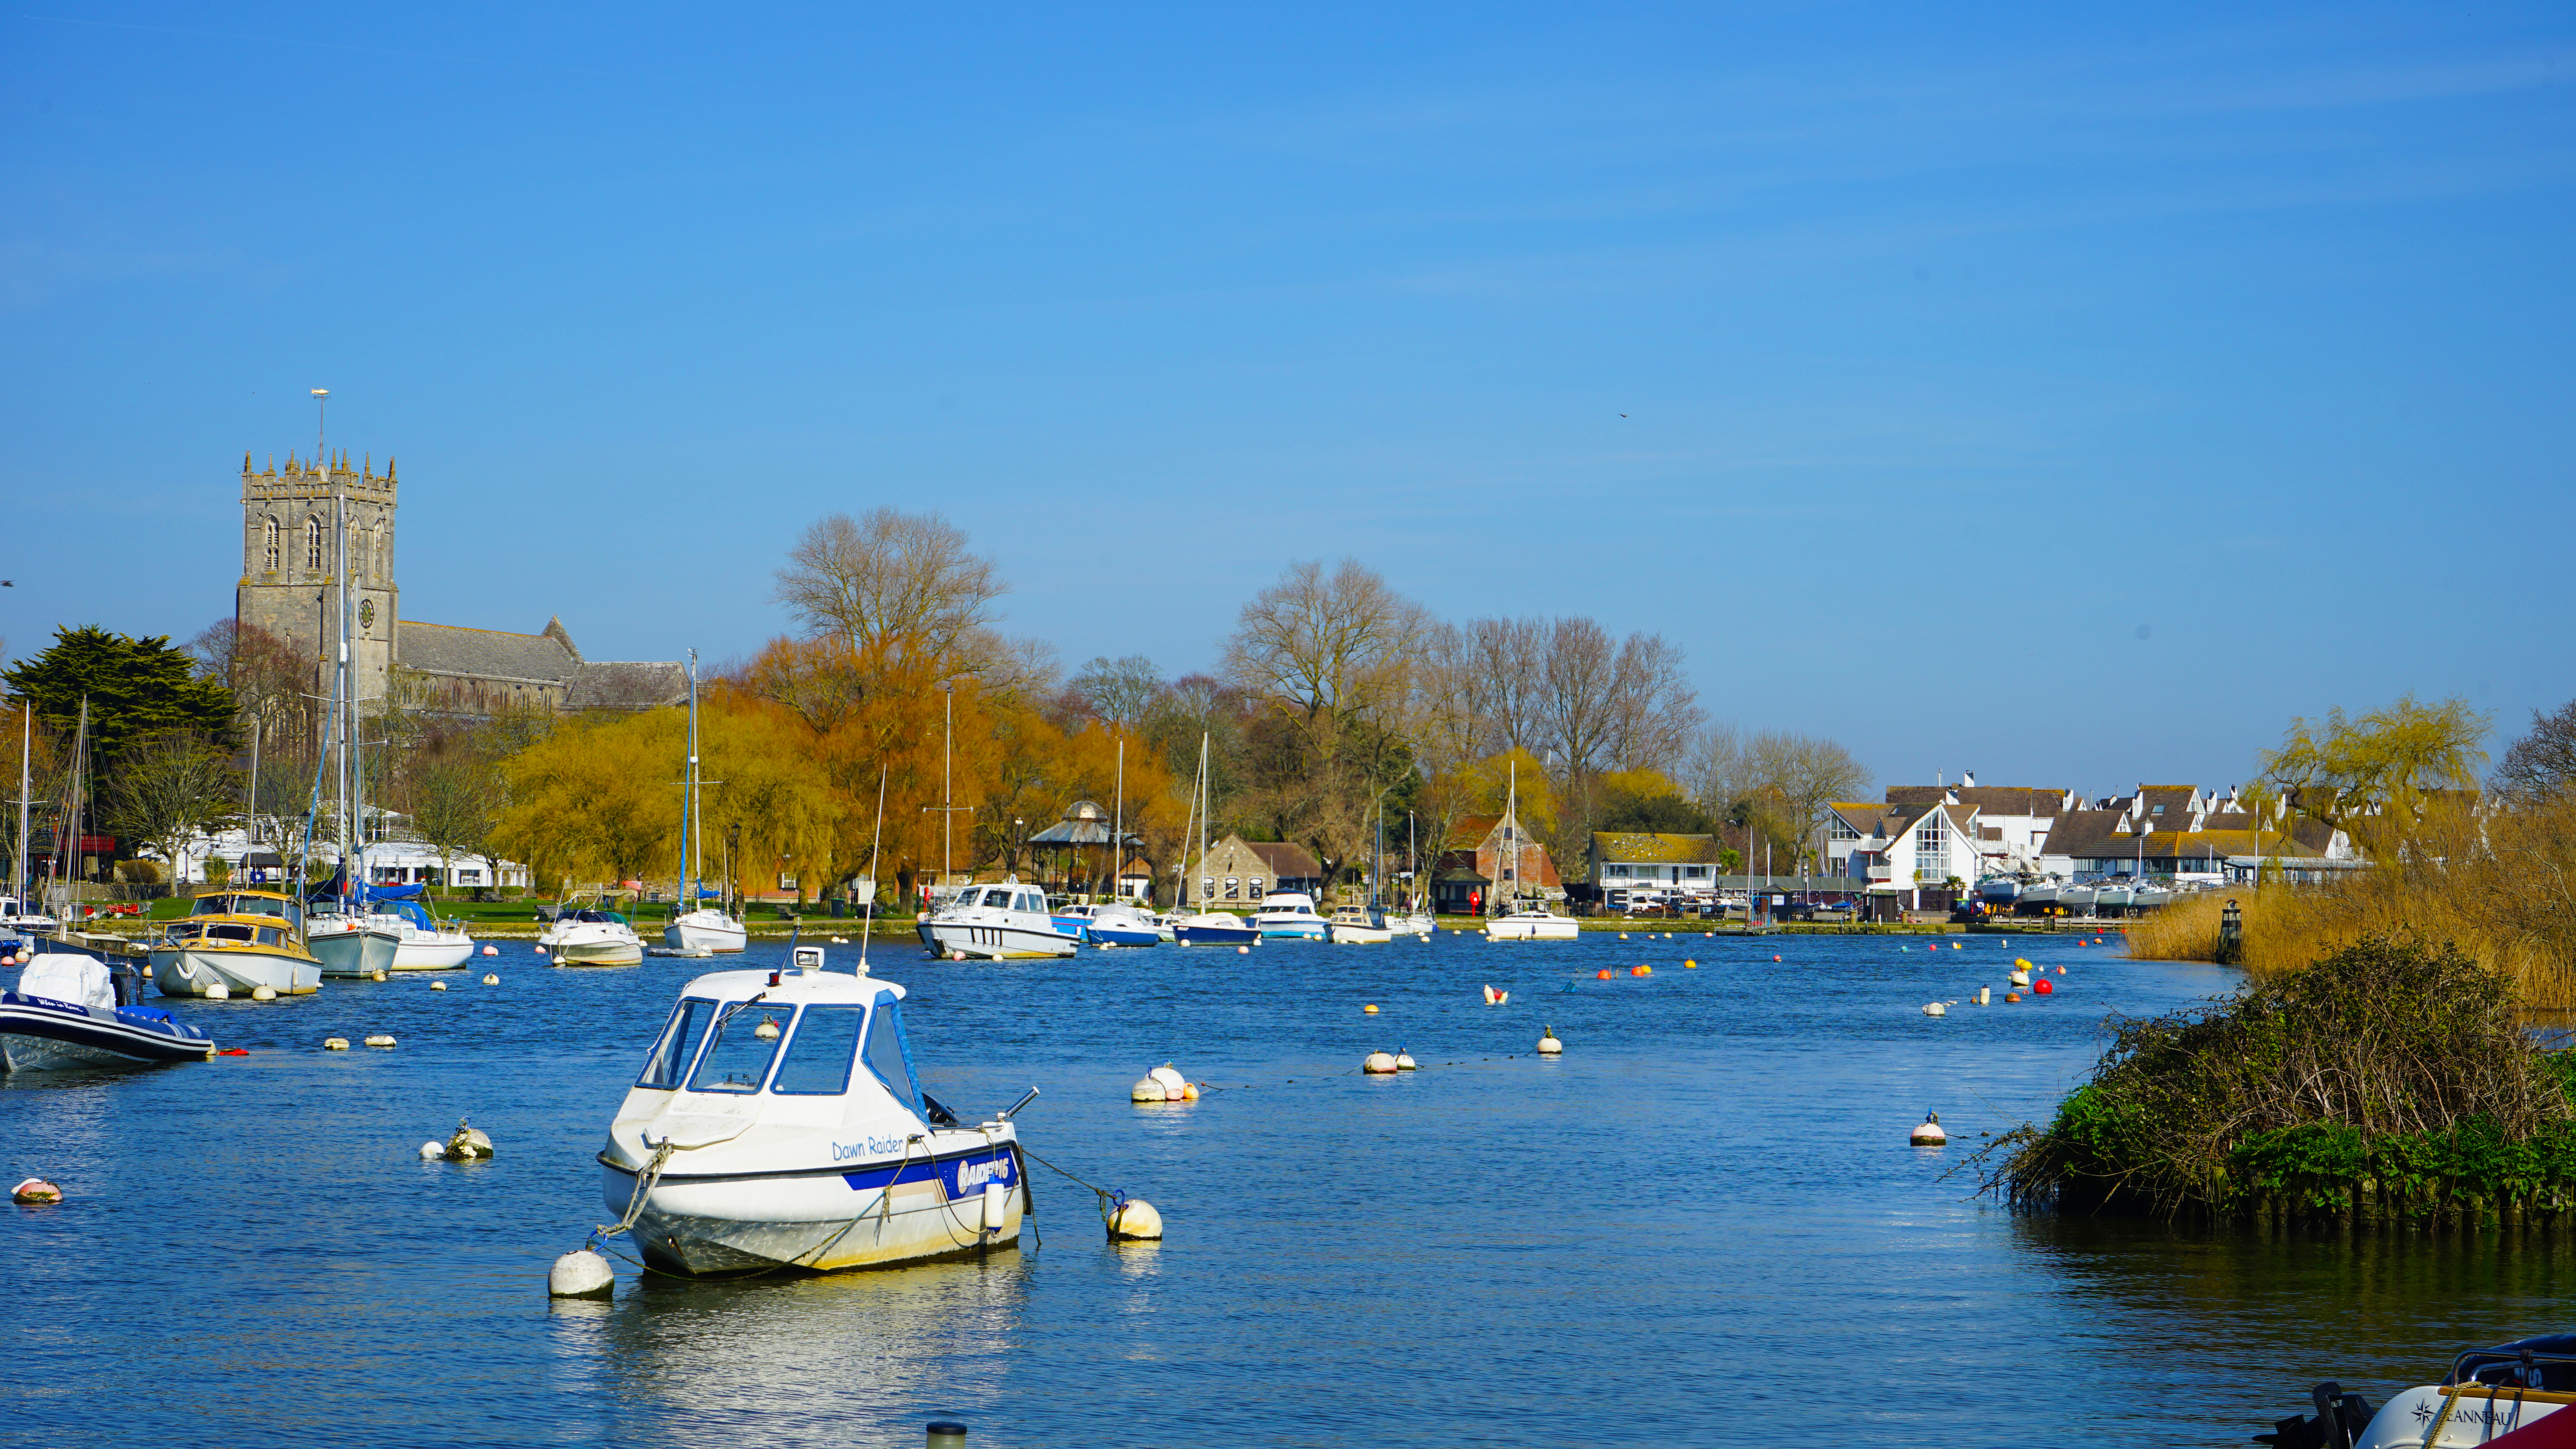 Boats moored in the river and Christchurch